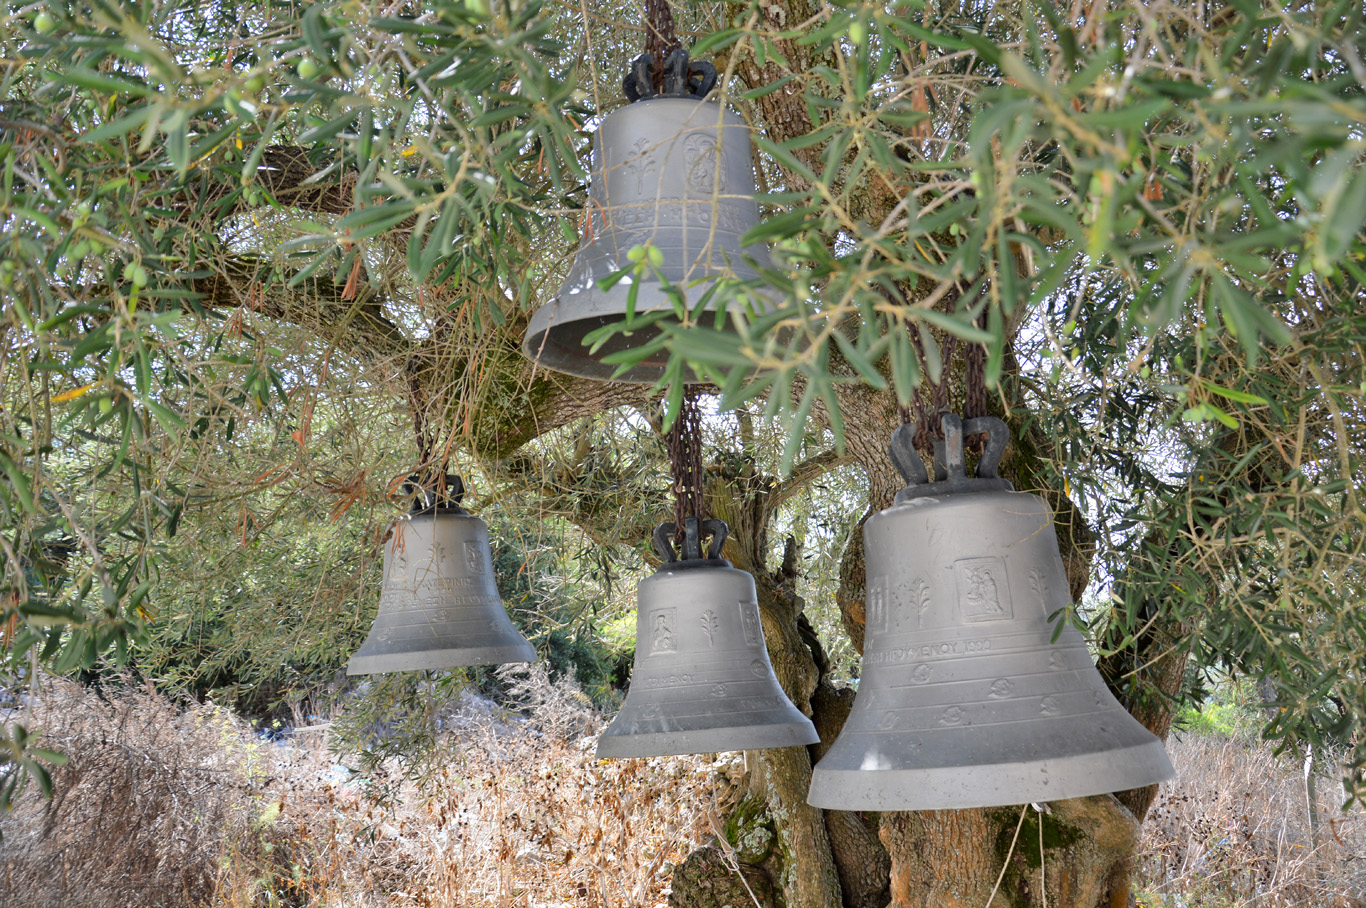 Bells at St. George's Monastery